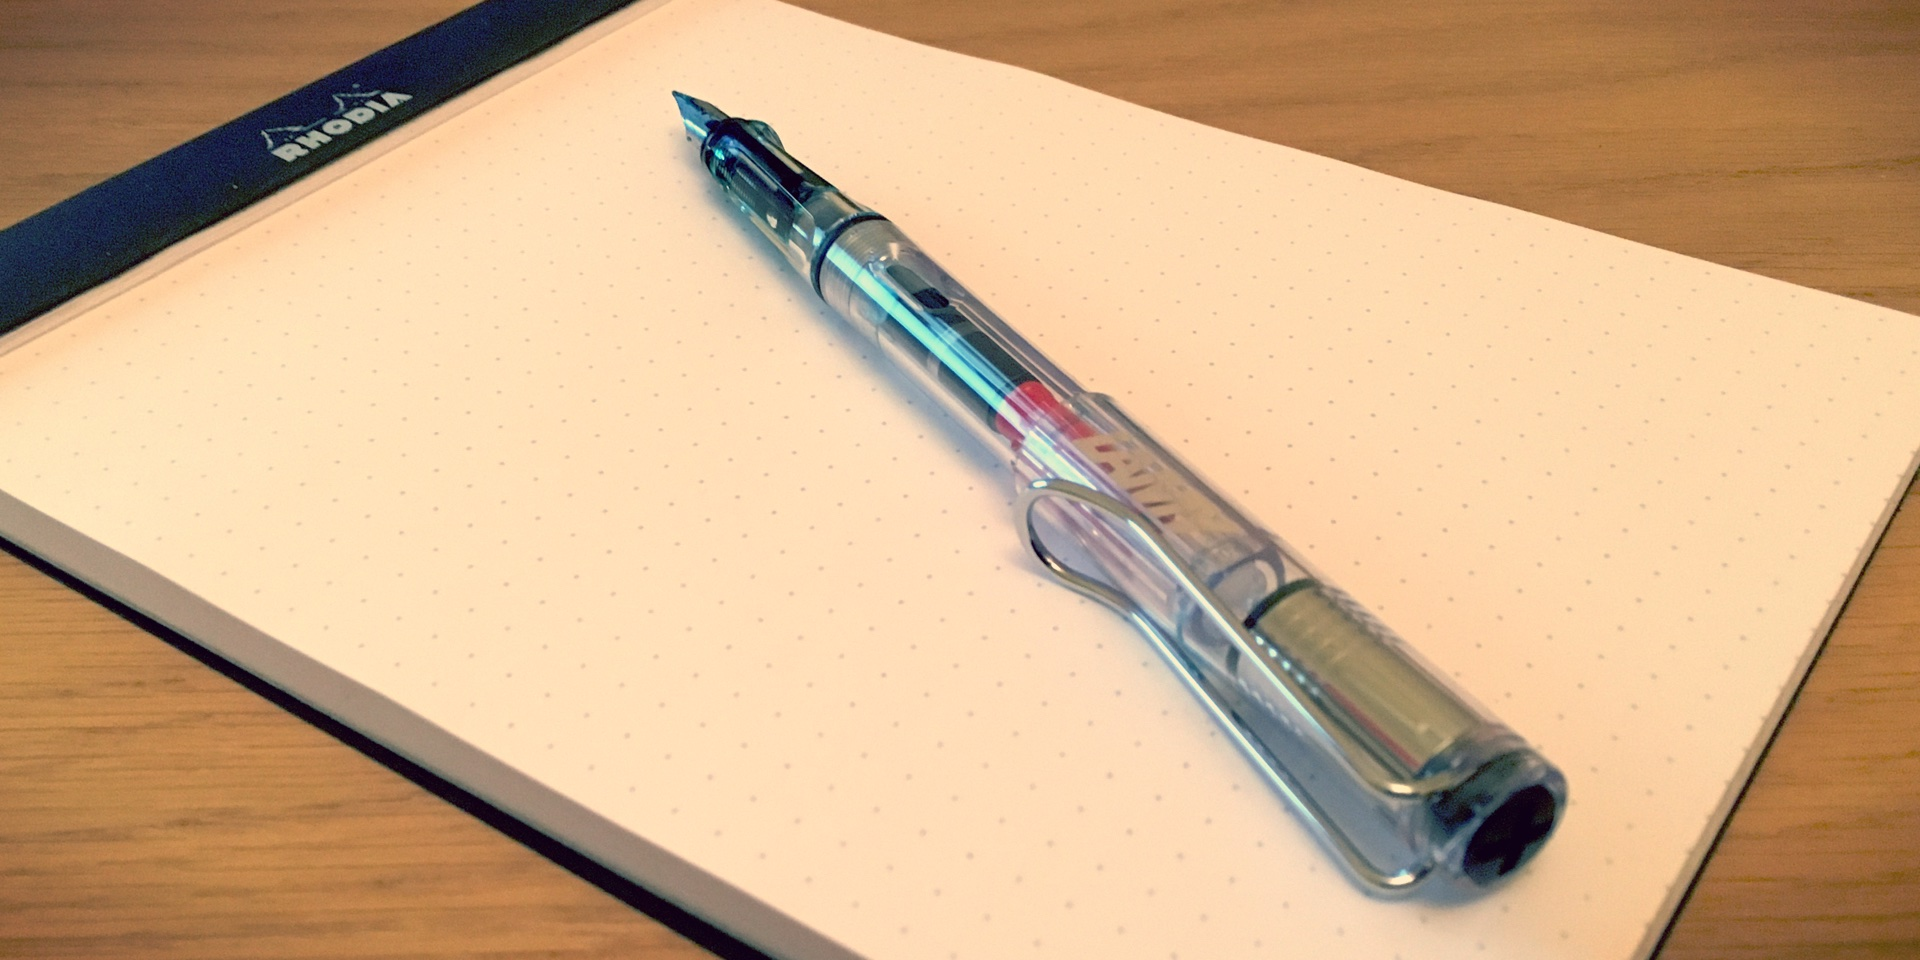 Lamy Demonstrator pen